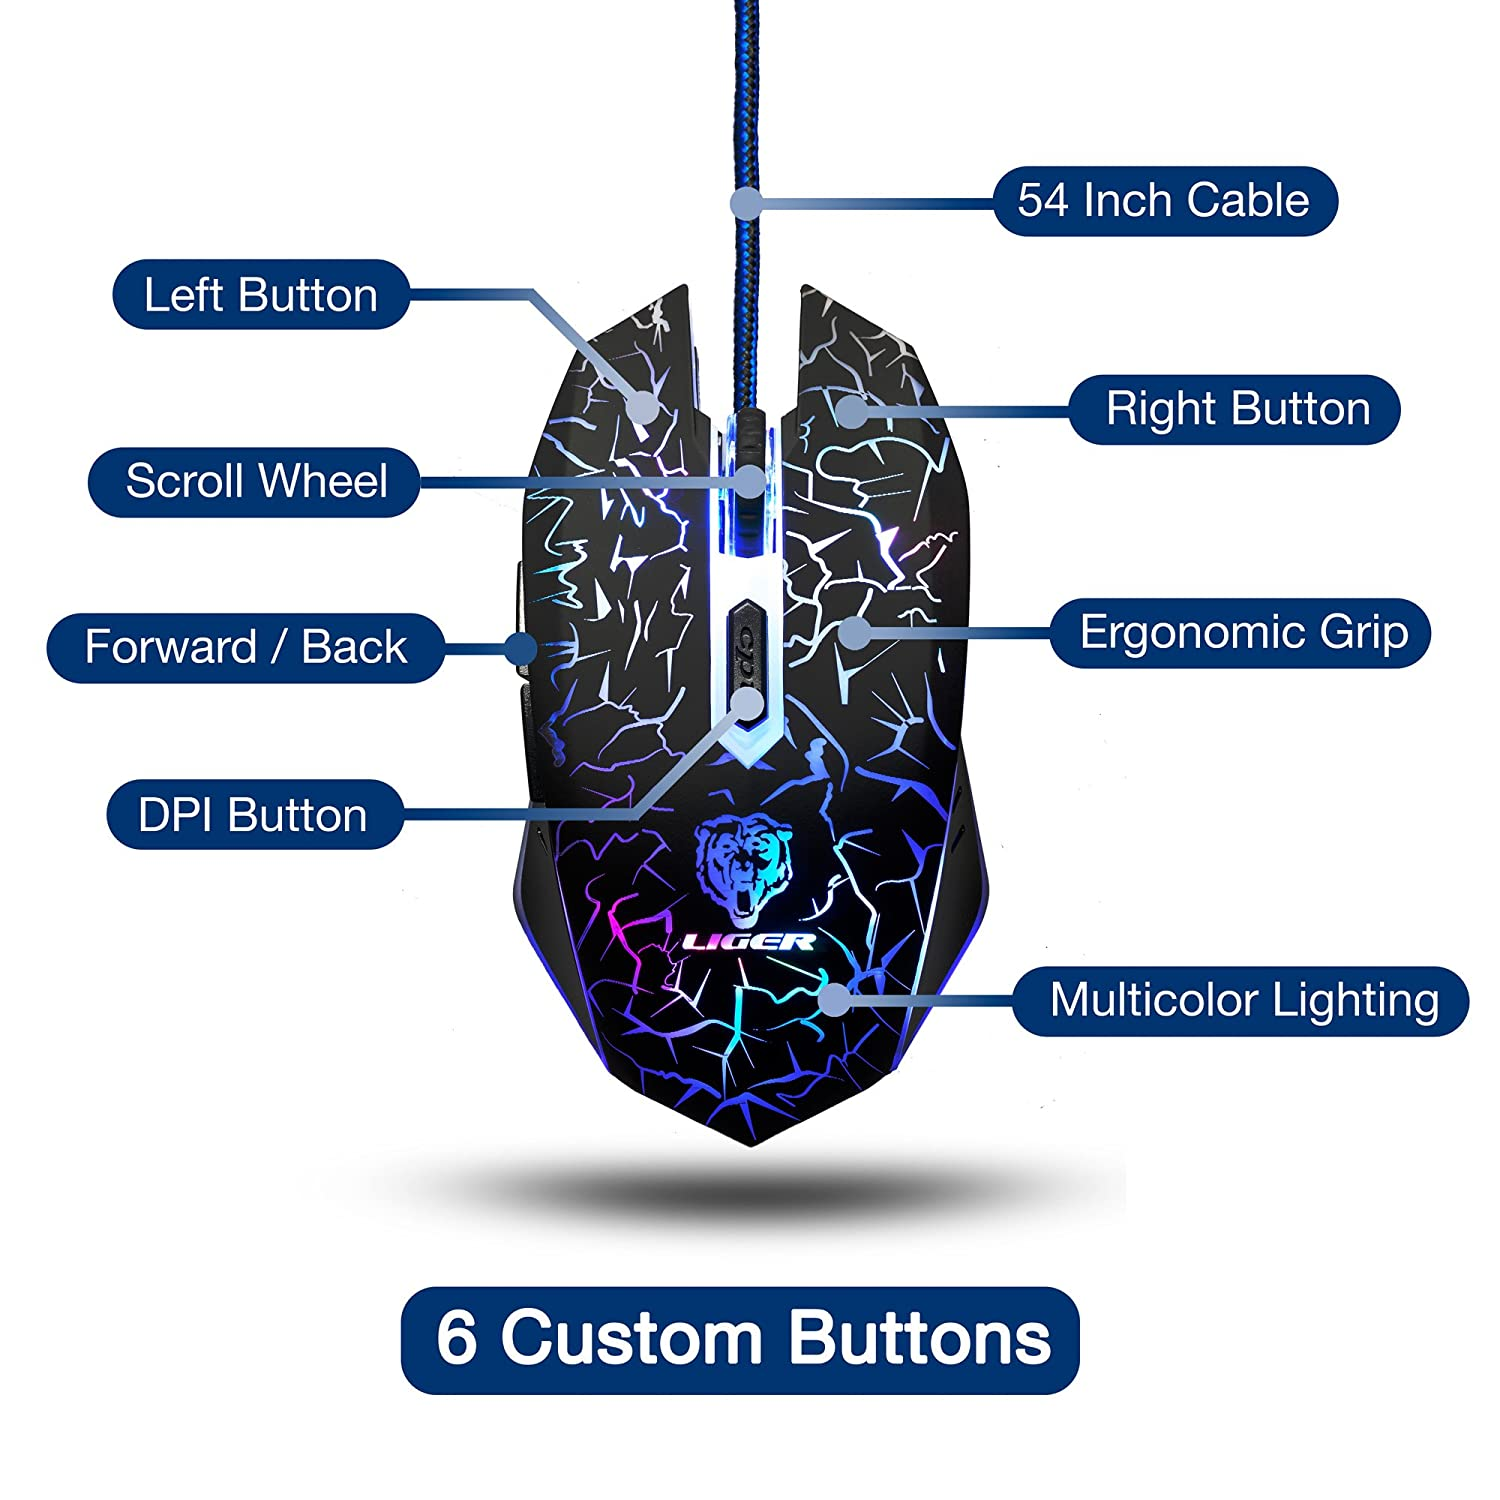 Liger Gaming Mouse Game Mice For Pc Computer Diagram 6 Buttons Up To 3200 Dpi Adjustable Switch Function 7 Lighting Color